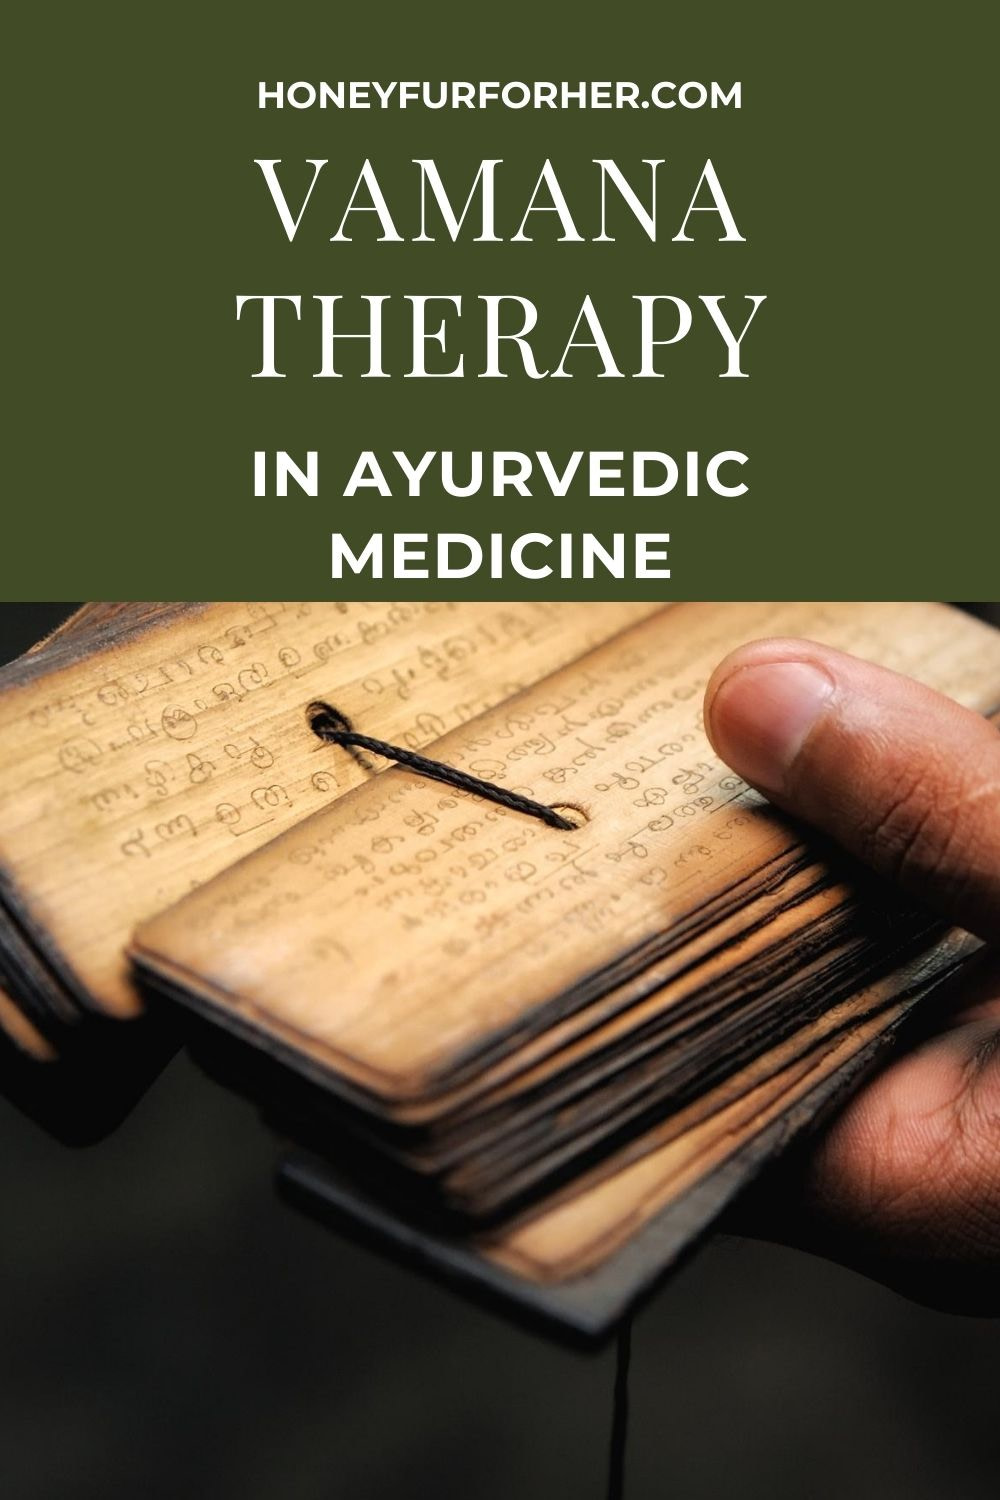 What is Vamana Therapy In Ayurveda Pinterest Graphic